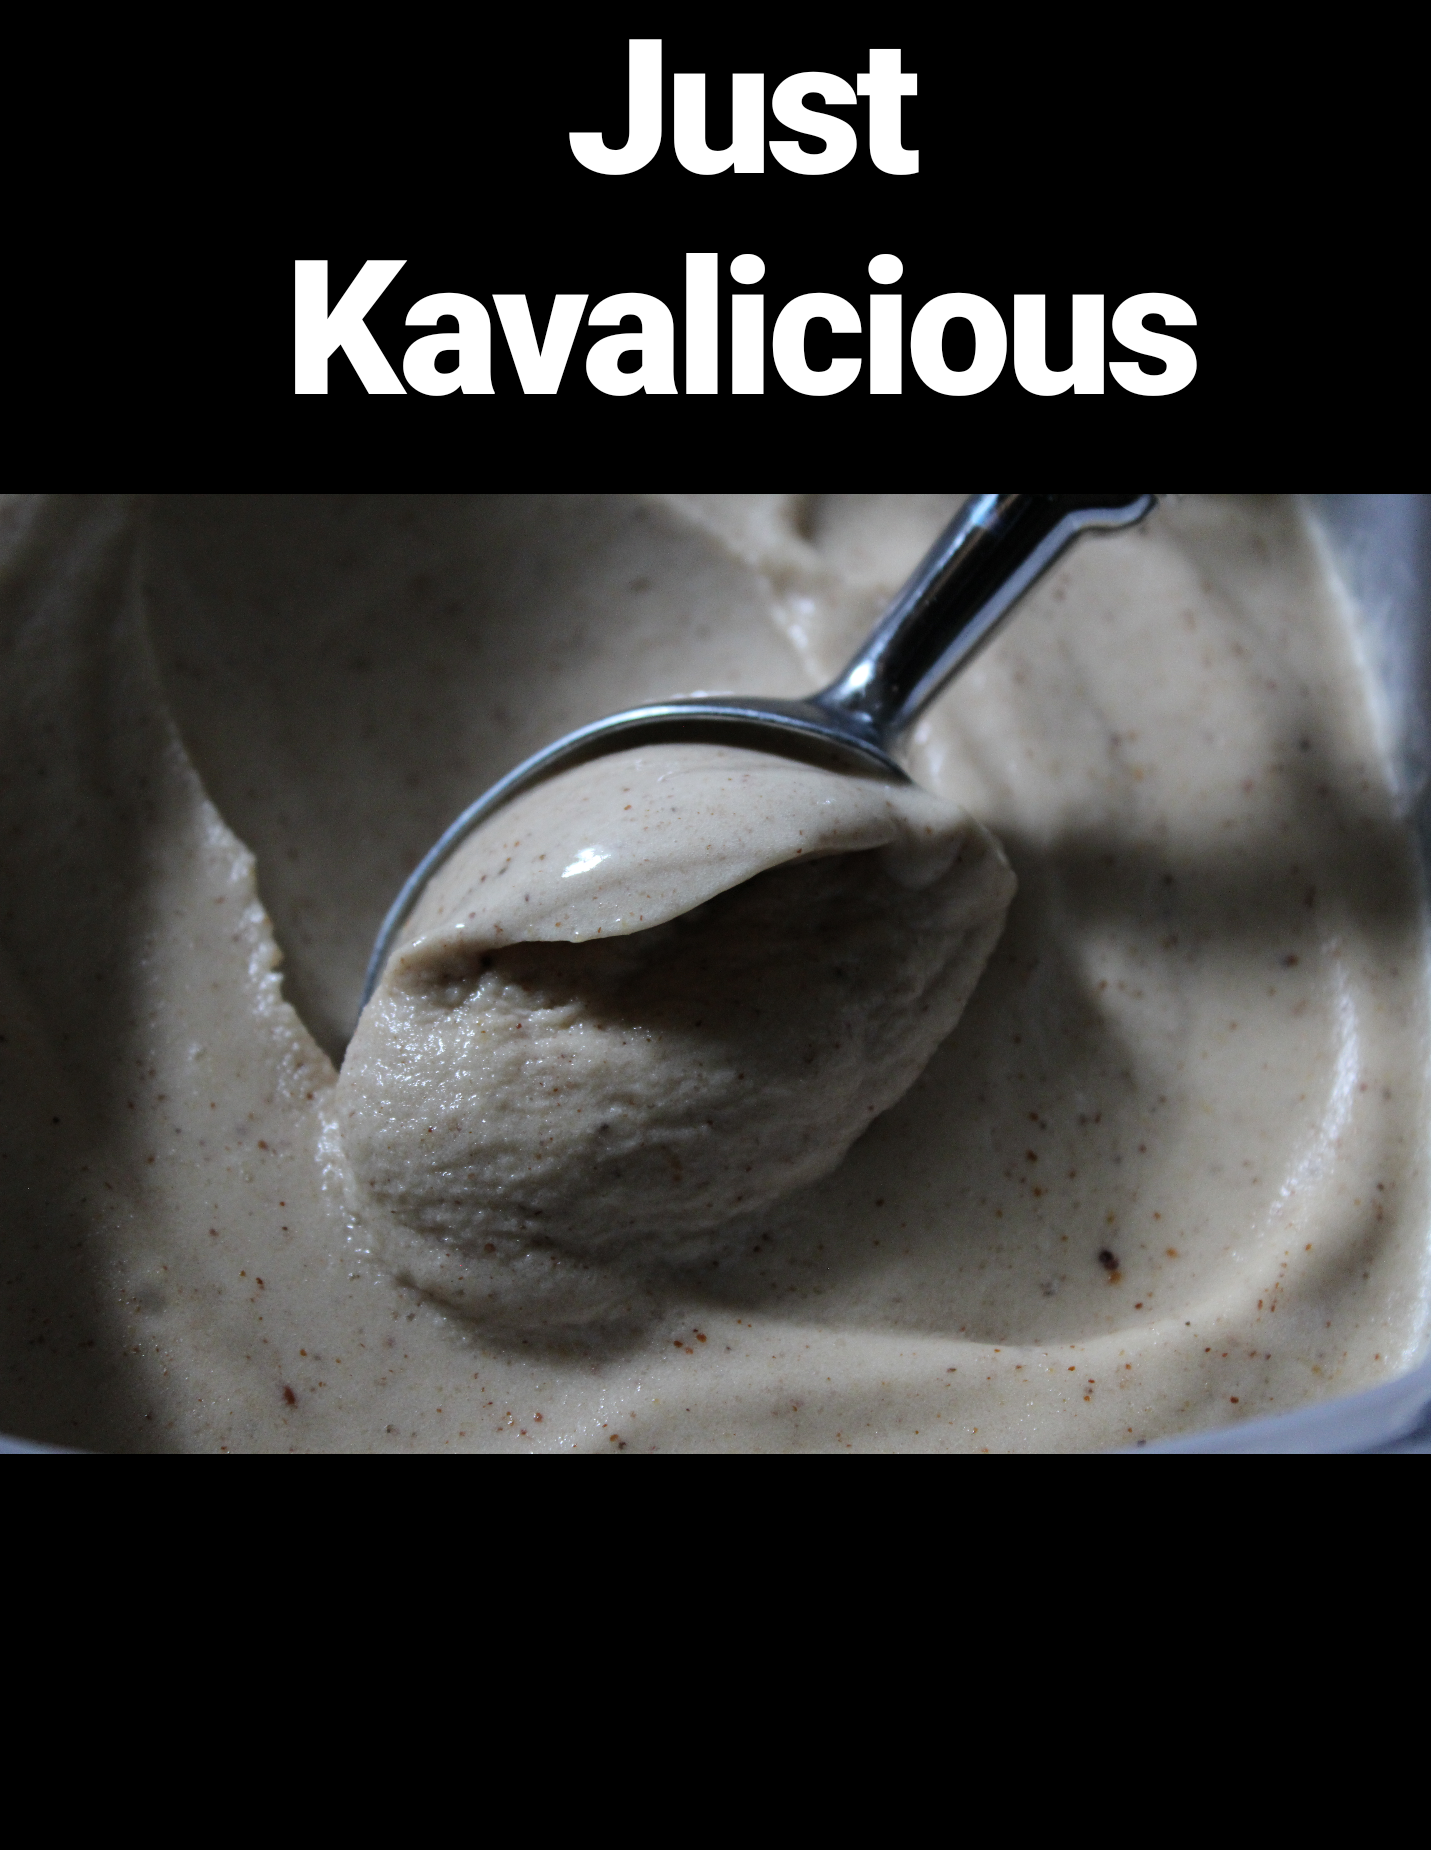 Just Kavalicious – The Beginning